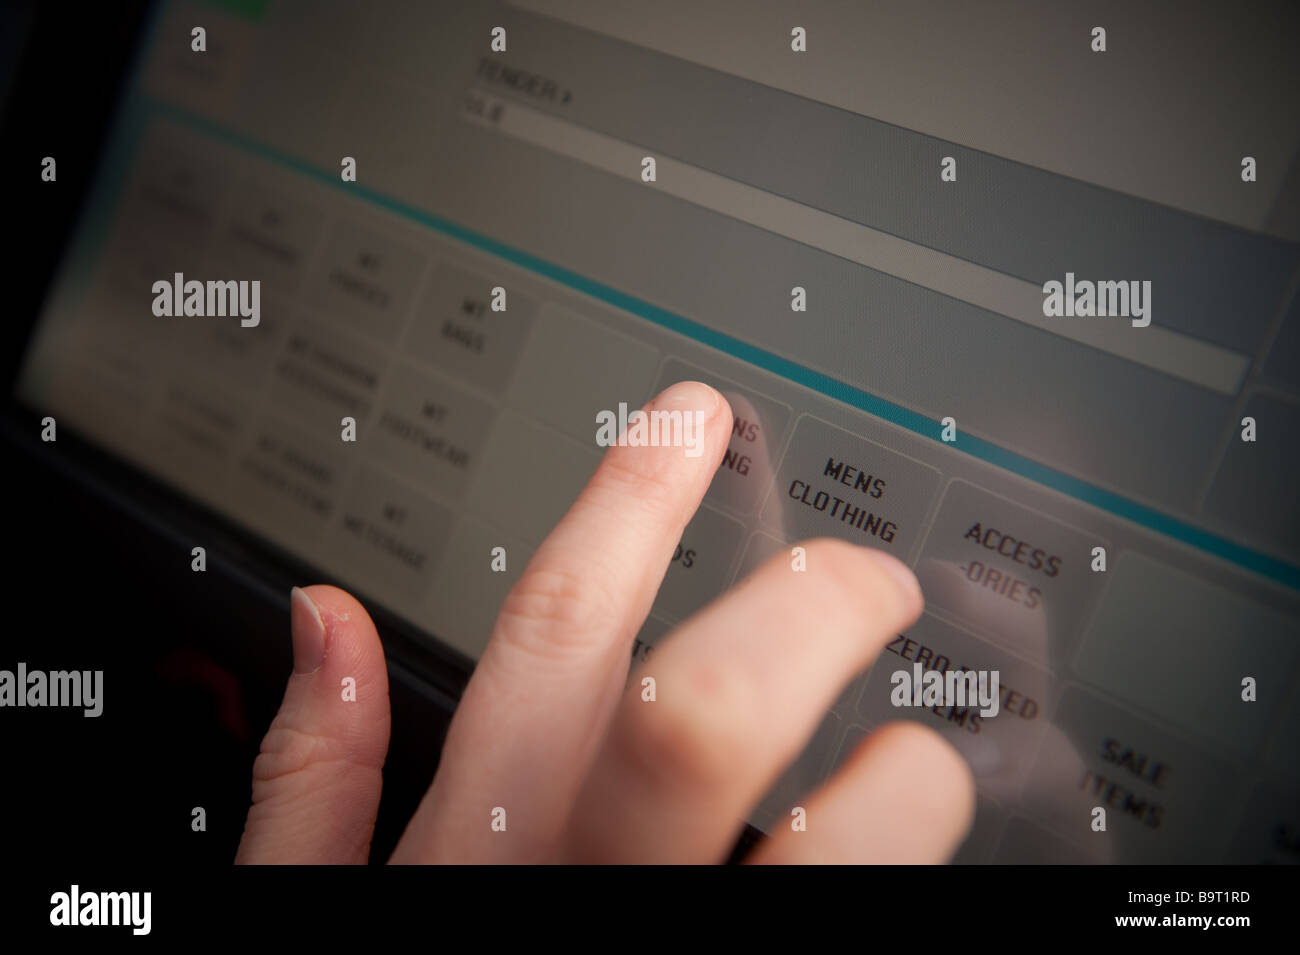 Shop assistant using touch sensitive screen checkout till in a shop - Stock Image